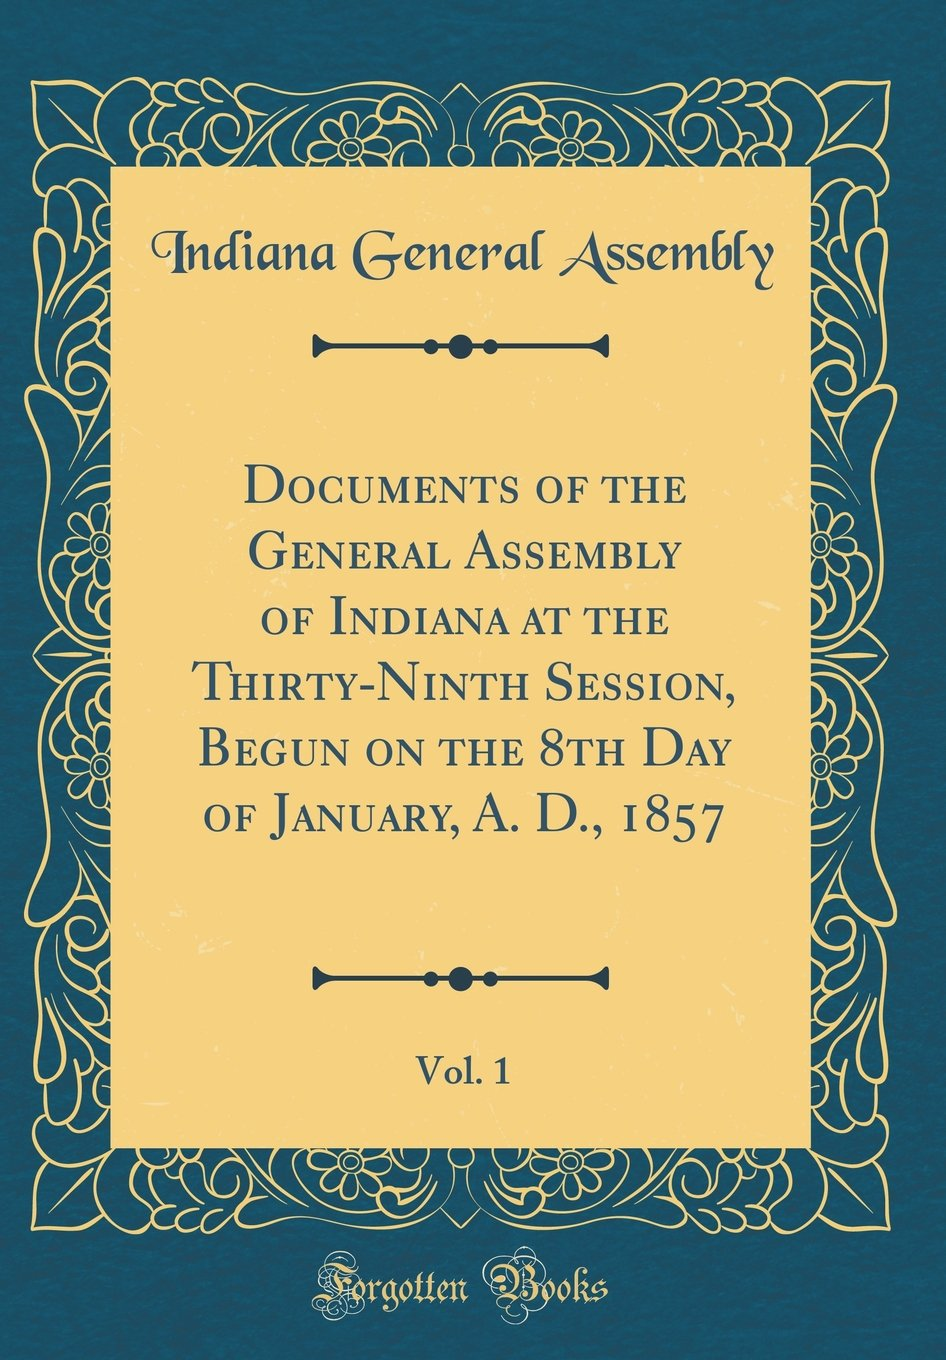 Documents of the General Assembly of Indiana at the Thirty-Ninth Session, Begun on the 8th Day of January, A. D., 1857, Vol. 1 (Classic Reprint) pdf epub